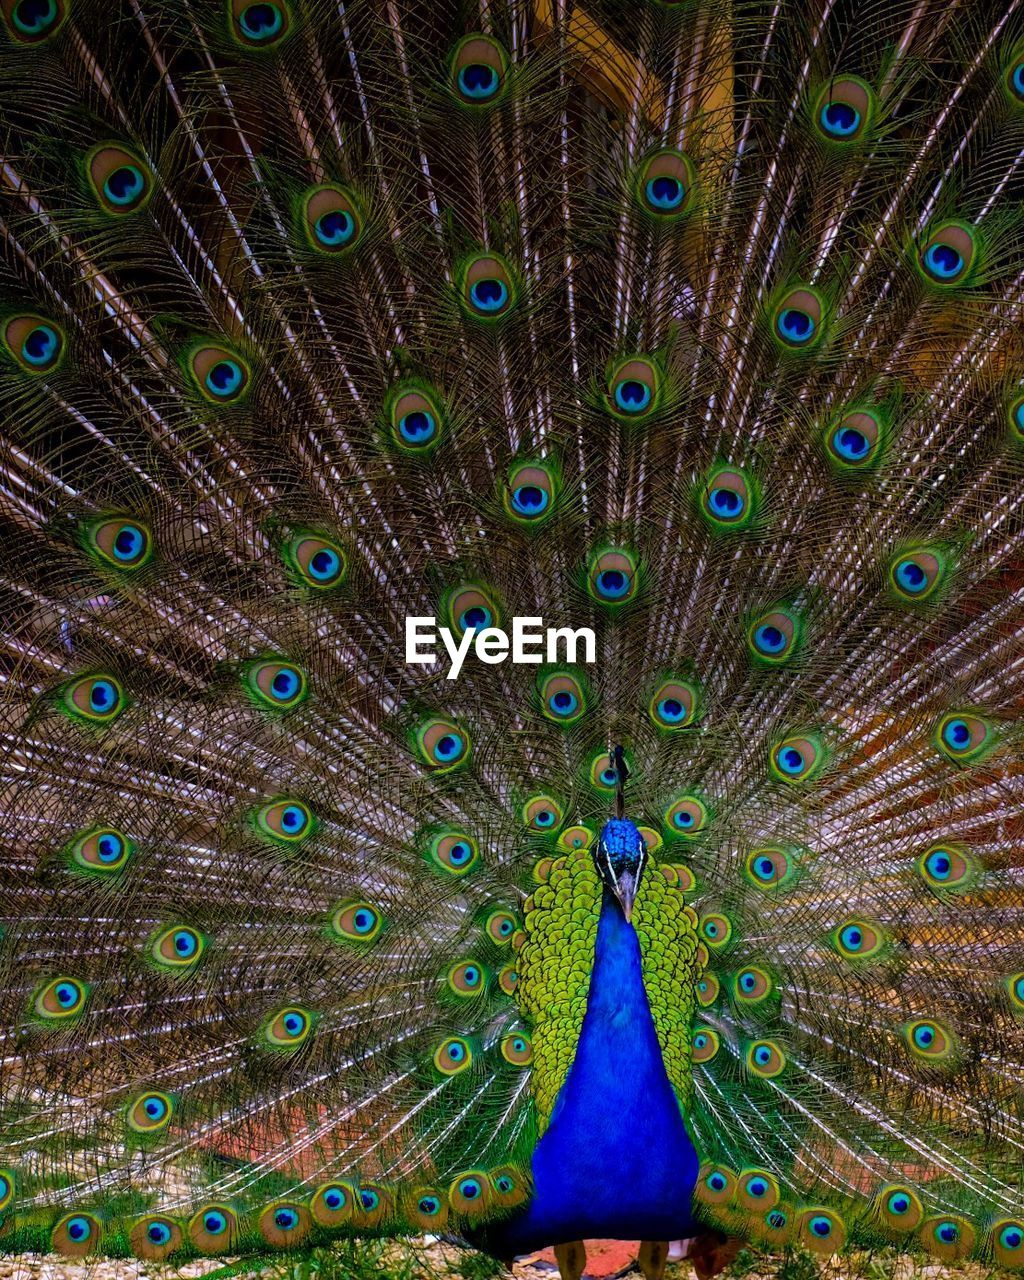 peacock, bird, peacock feather, animal themes, feather, animal, animals in the wild, one animal, animal wildlife, fanned out, vertebrate, multi colored, full frame, beauty in nature, no people, close-up, blue, green color, natural pattern, male animal, outdoors